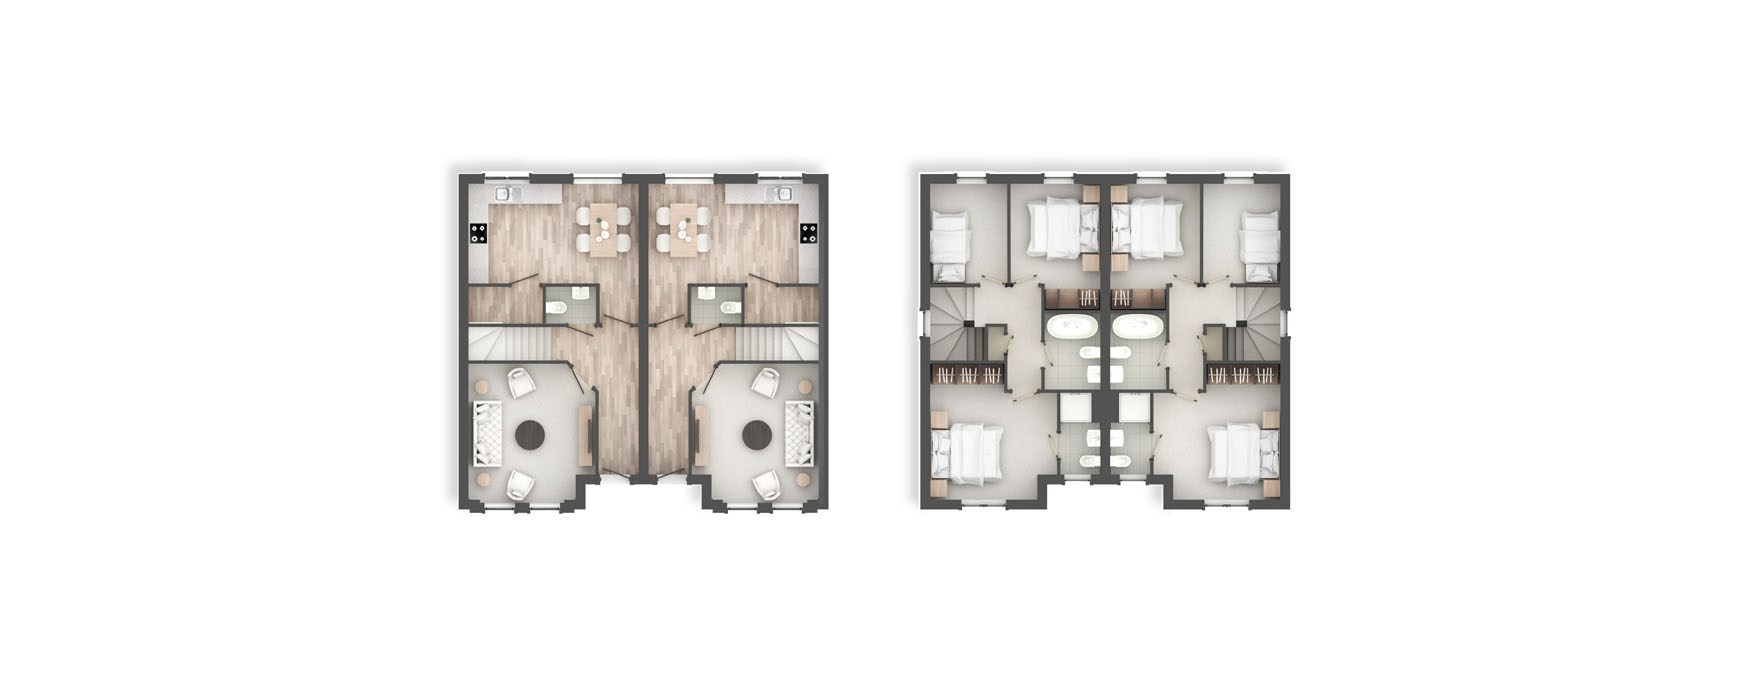 3d-floor-plan-d-desmene-francos-and-costa-architectural-visualisation-agency